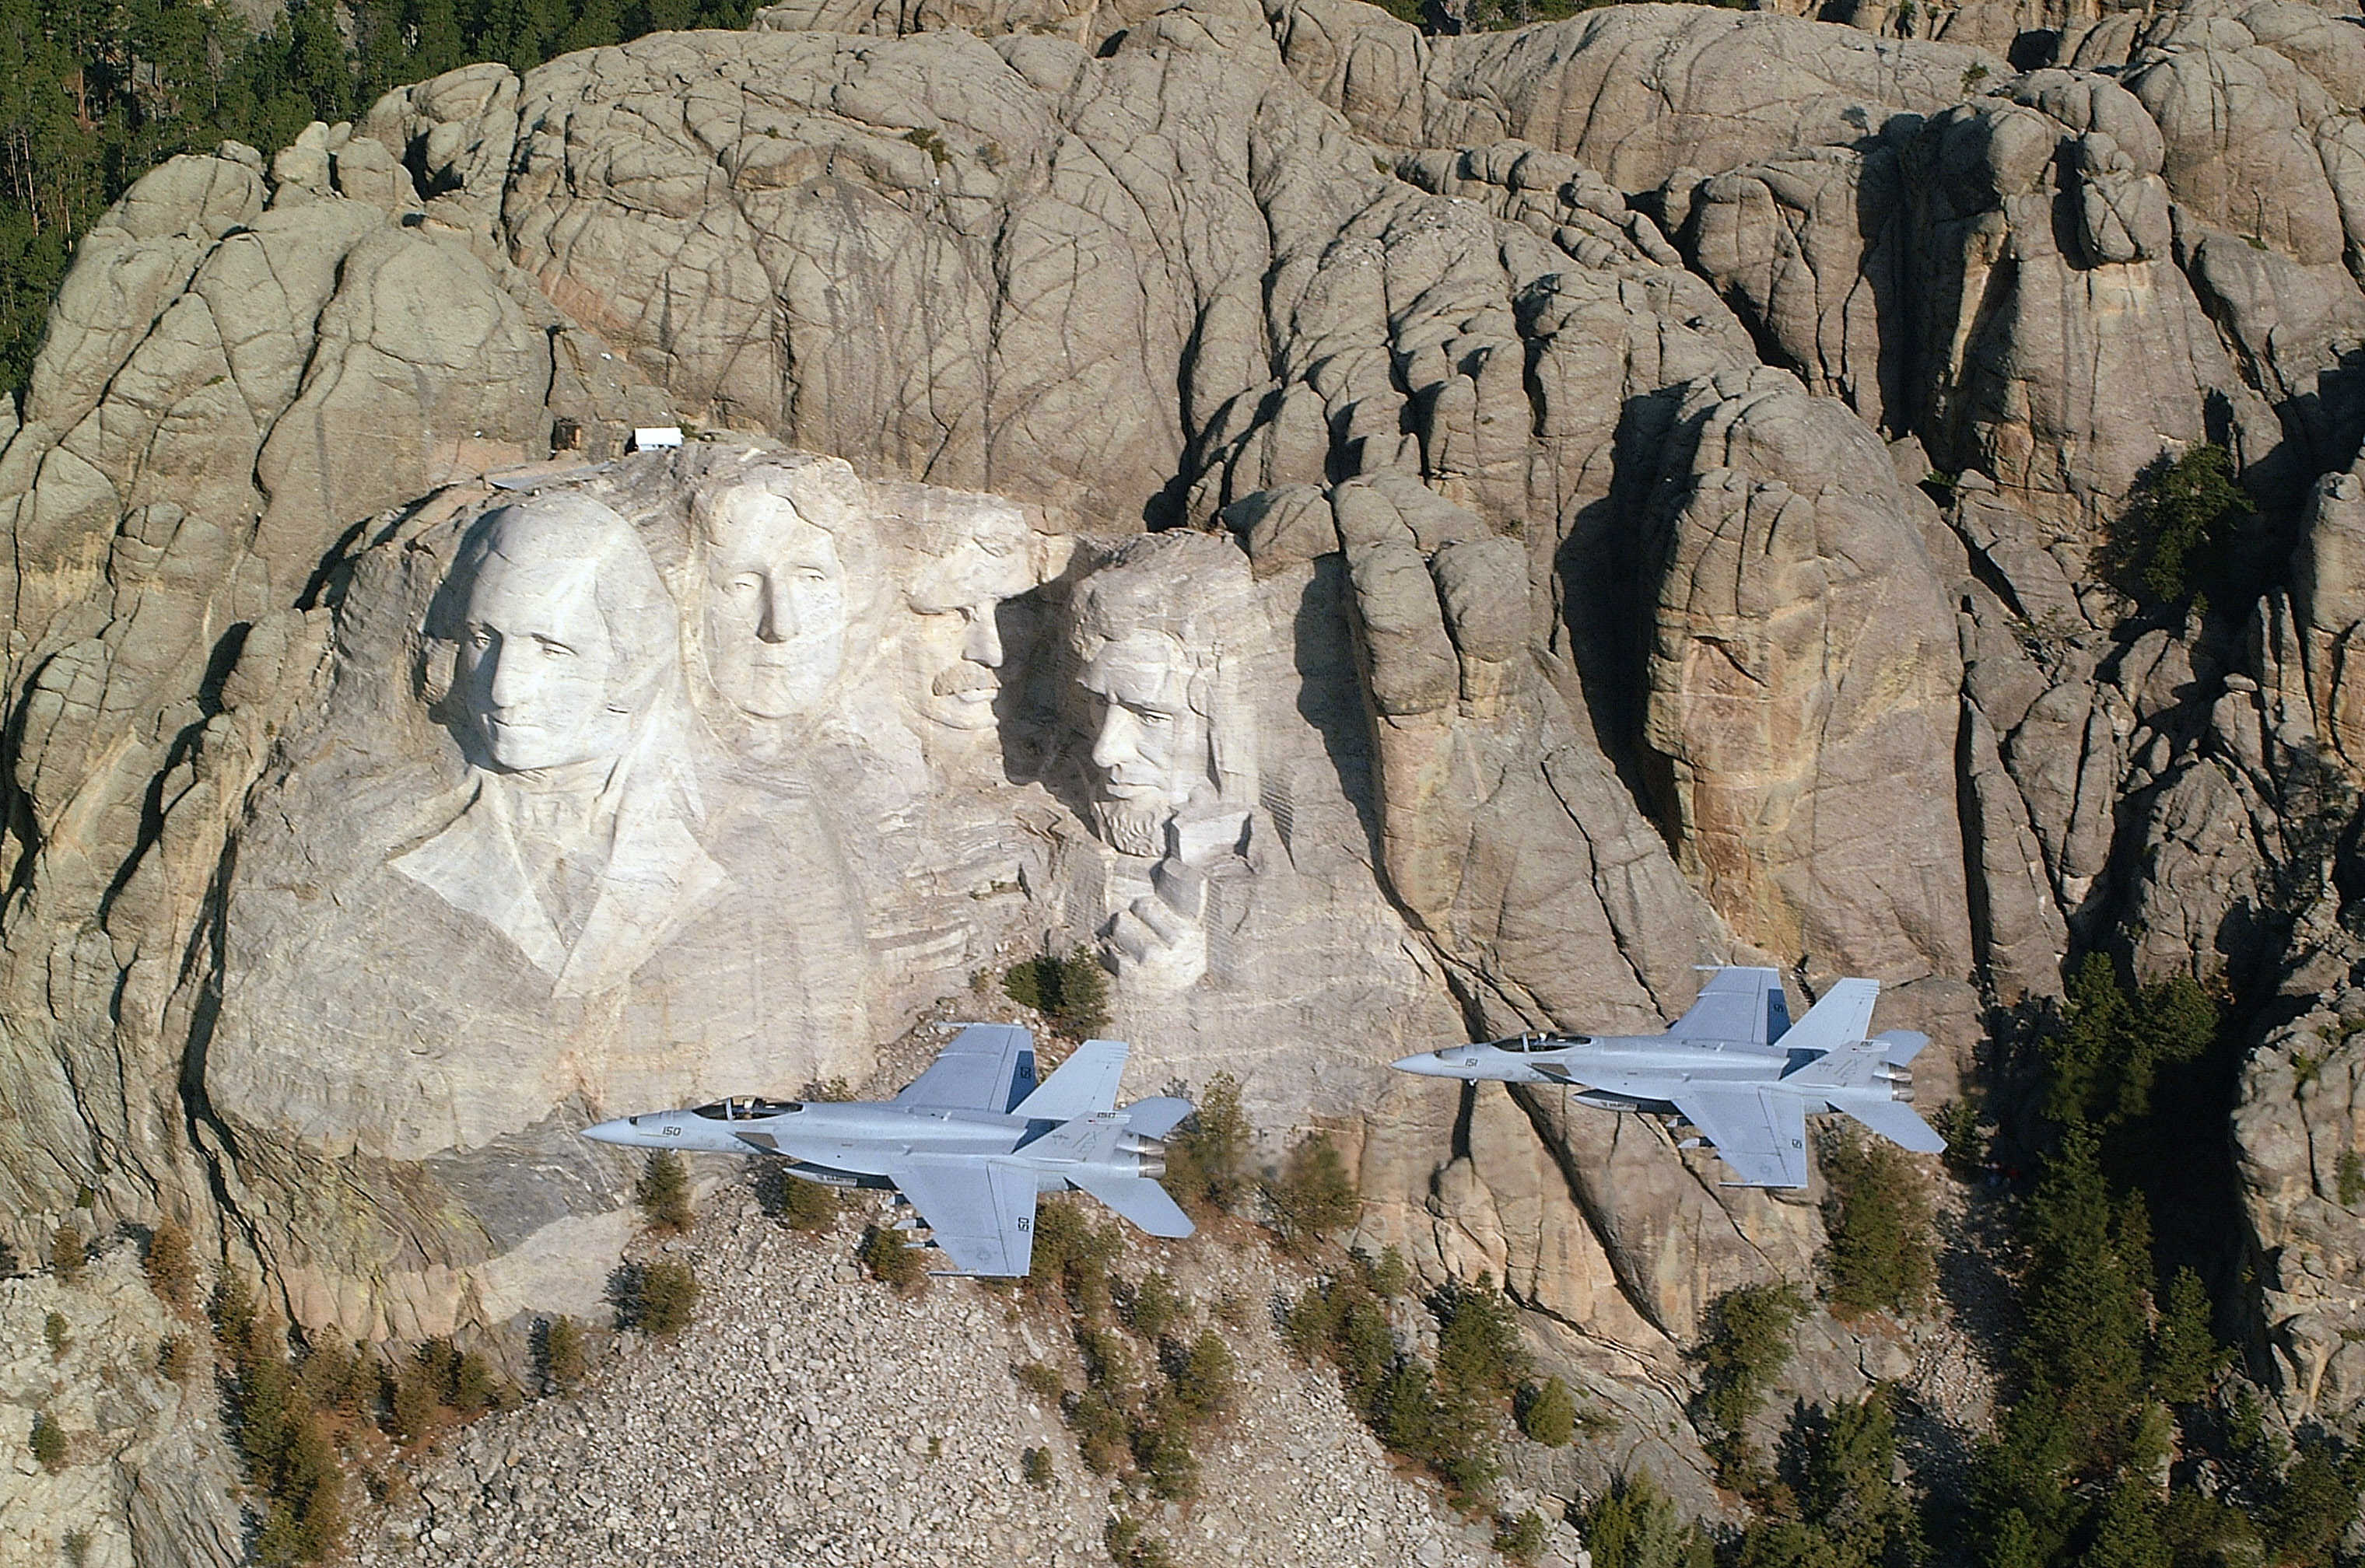 helicopter father with Mount Rushmore Might Be The Best Part About South Dakota on Dual Pilot Boeing 737 Flight Simulator Experience Montreal additionally Ottawa Hot Air Balloon Ride in addition Jennifer Jason Leigh Best Movies Tv Shows besides Black Hawk Helicopter furthermore Jennifer Jason Leigh Best Movies Tv Shows.